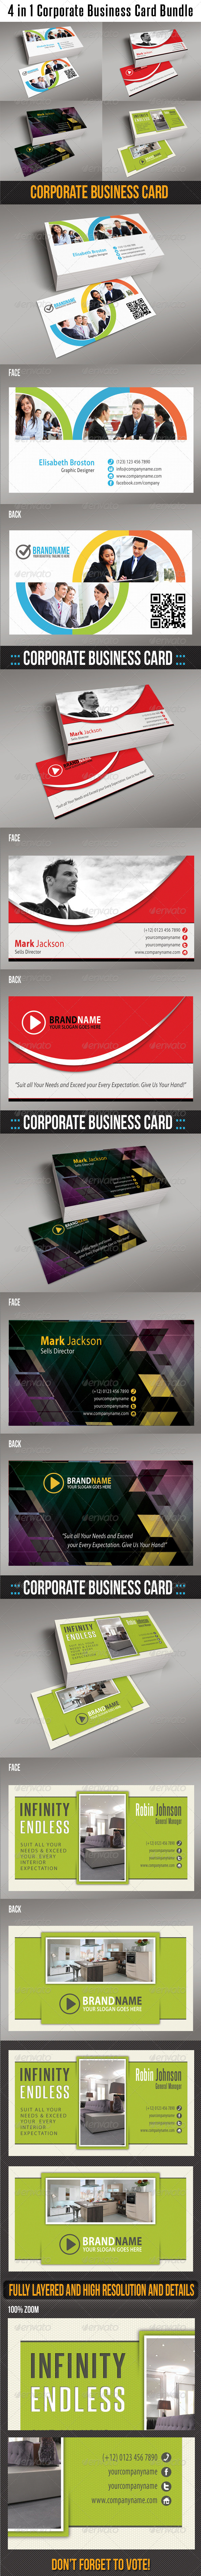 GraphicRiver 4 in 1 Corporate Business Card Bundle 6367351